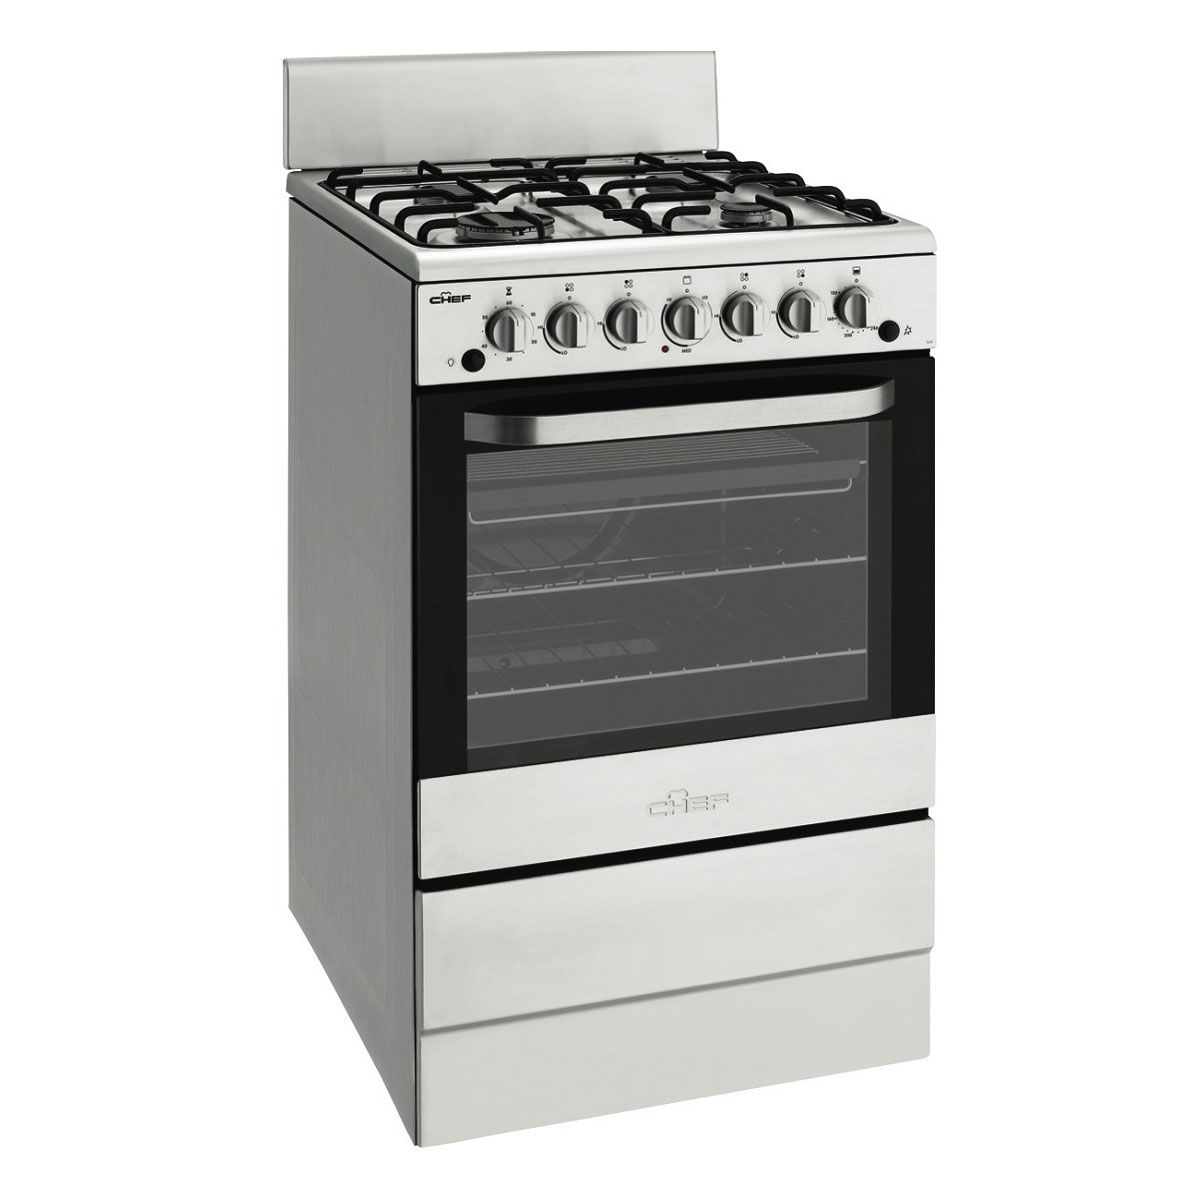 Chef CFG504SALP Freestanding Gas Oven Stove